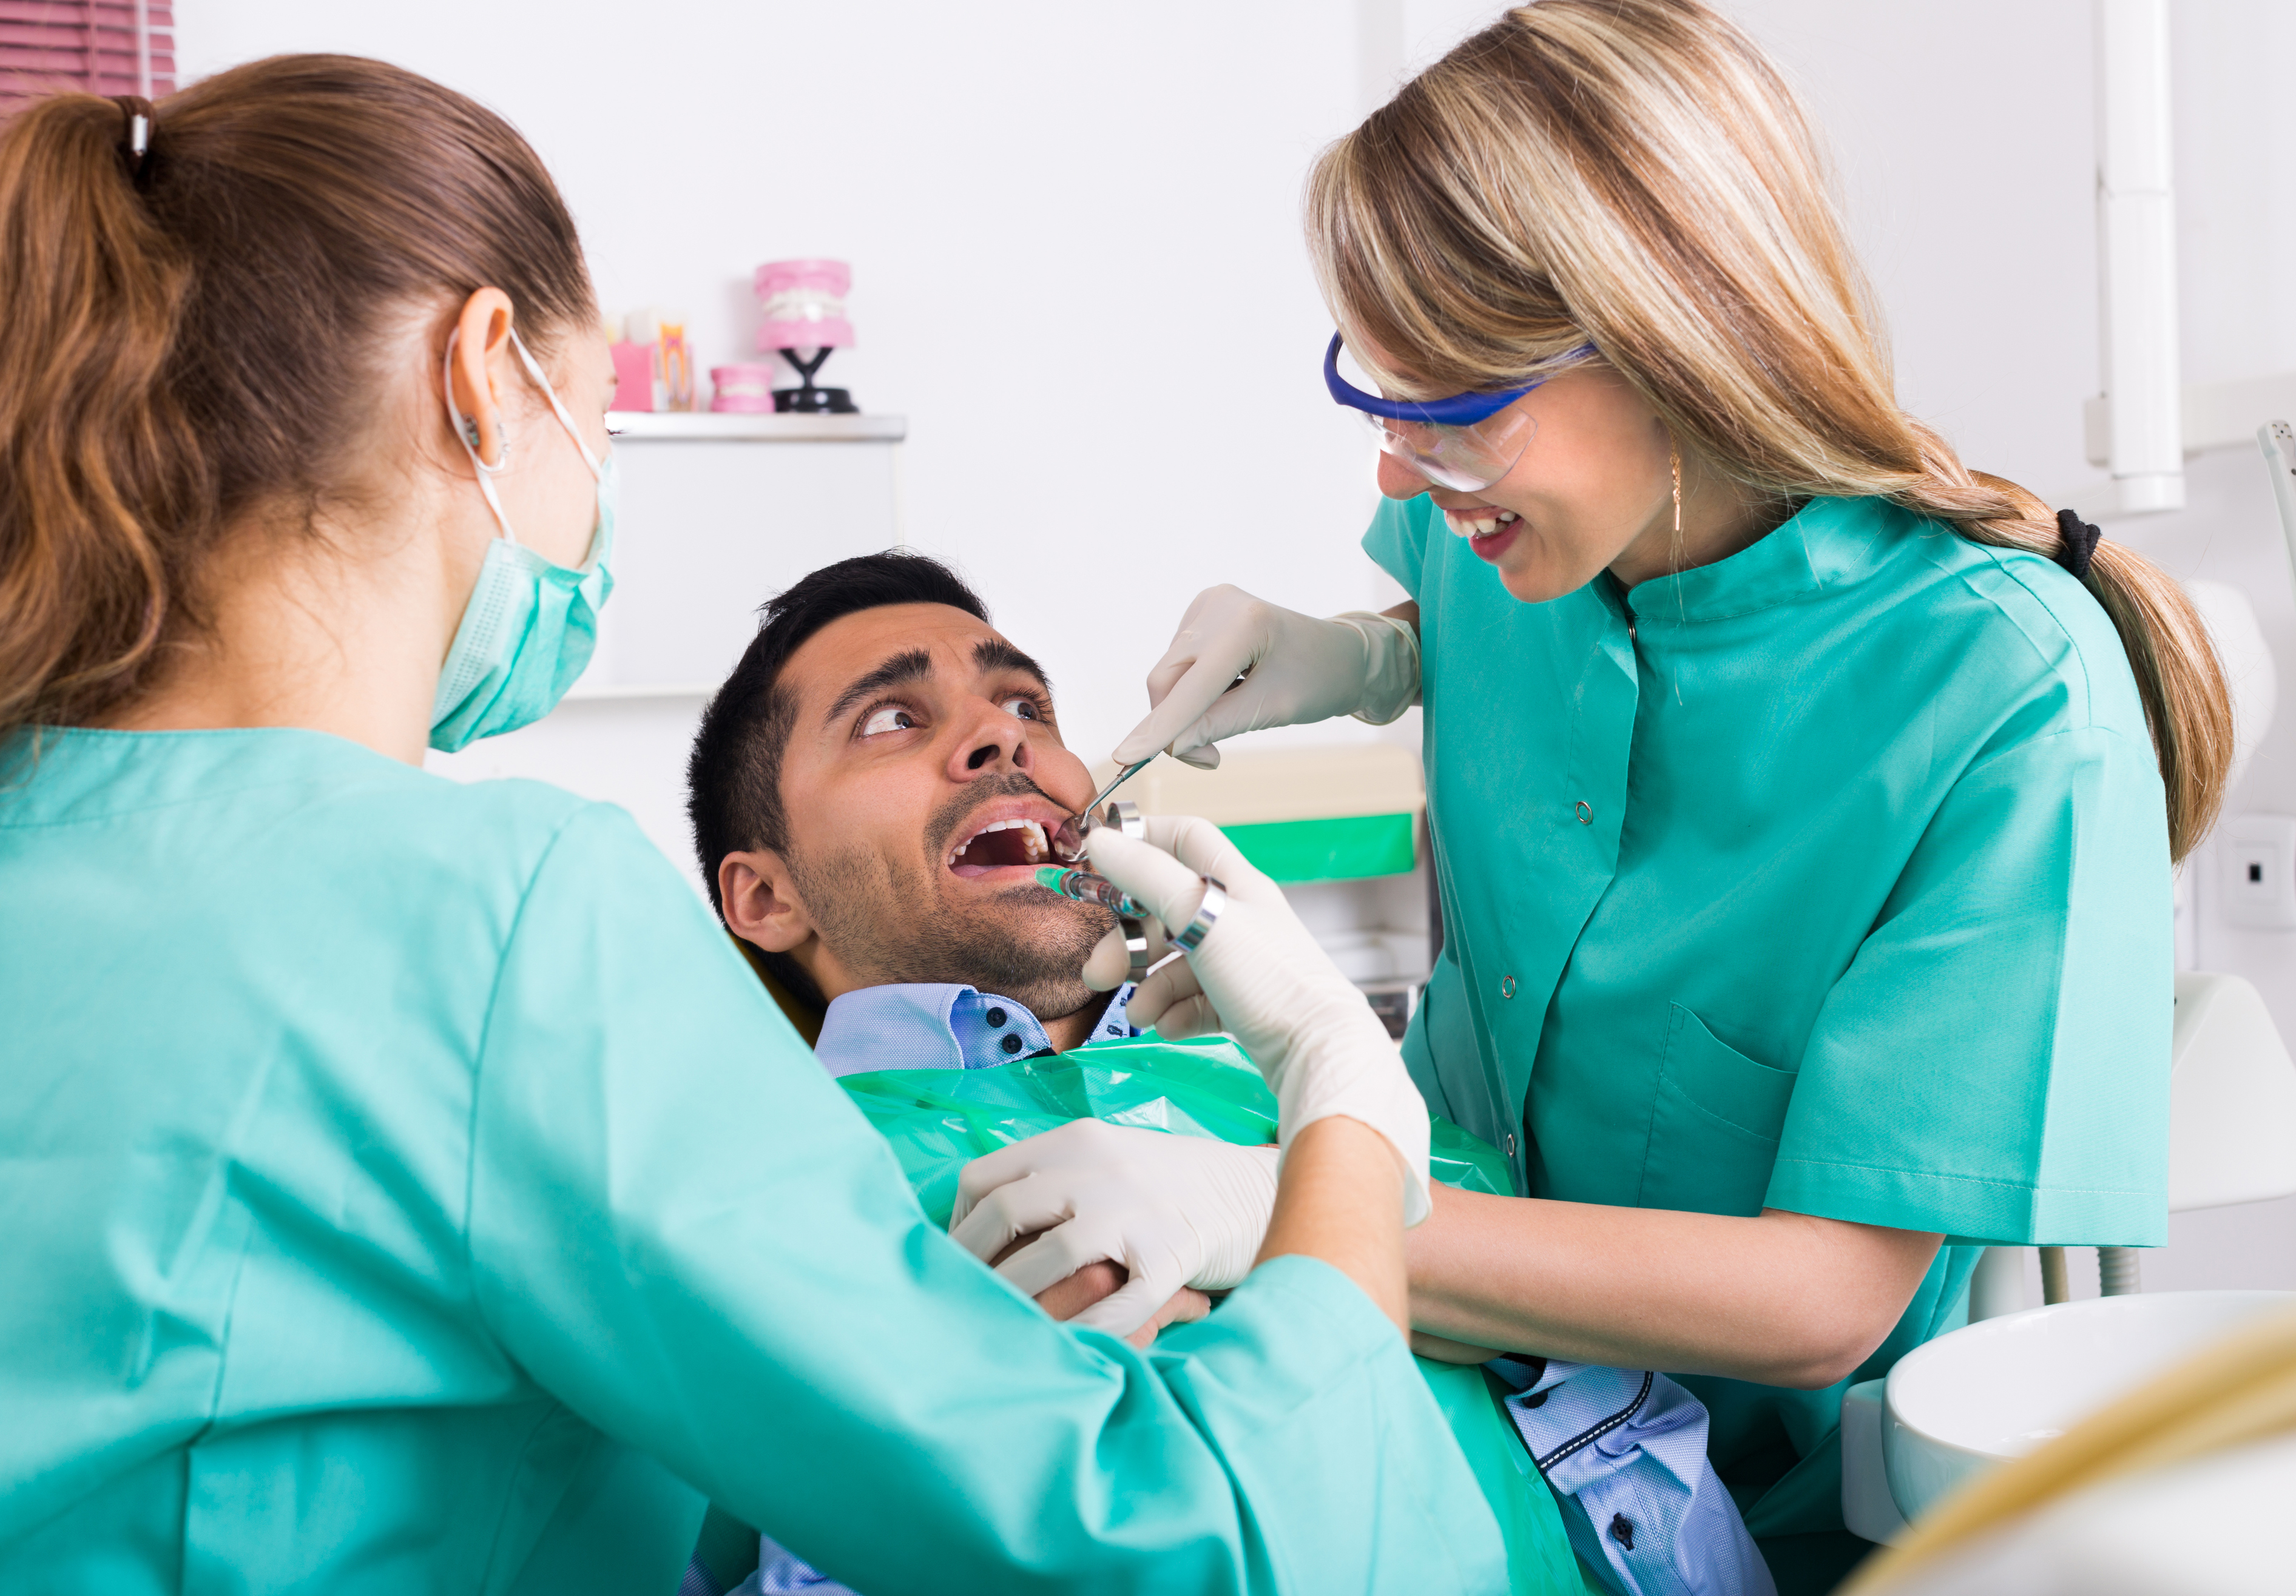 How To Deal With Dental Anxiety with Dominion Ridge Dentistry